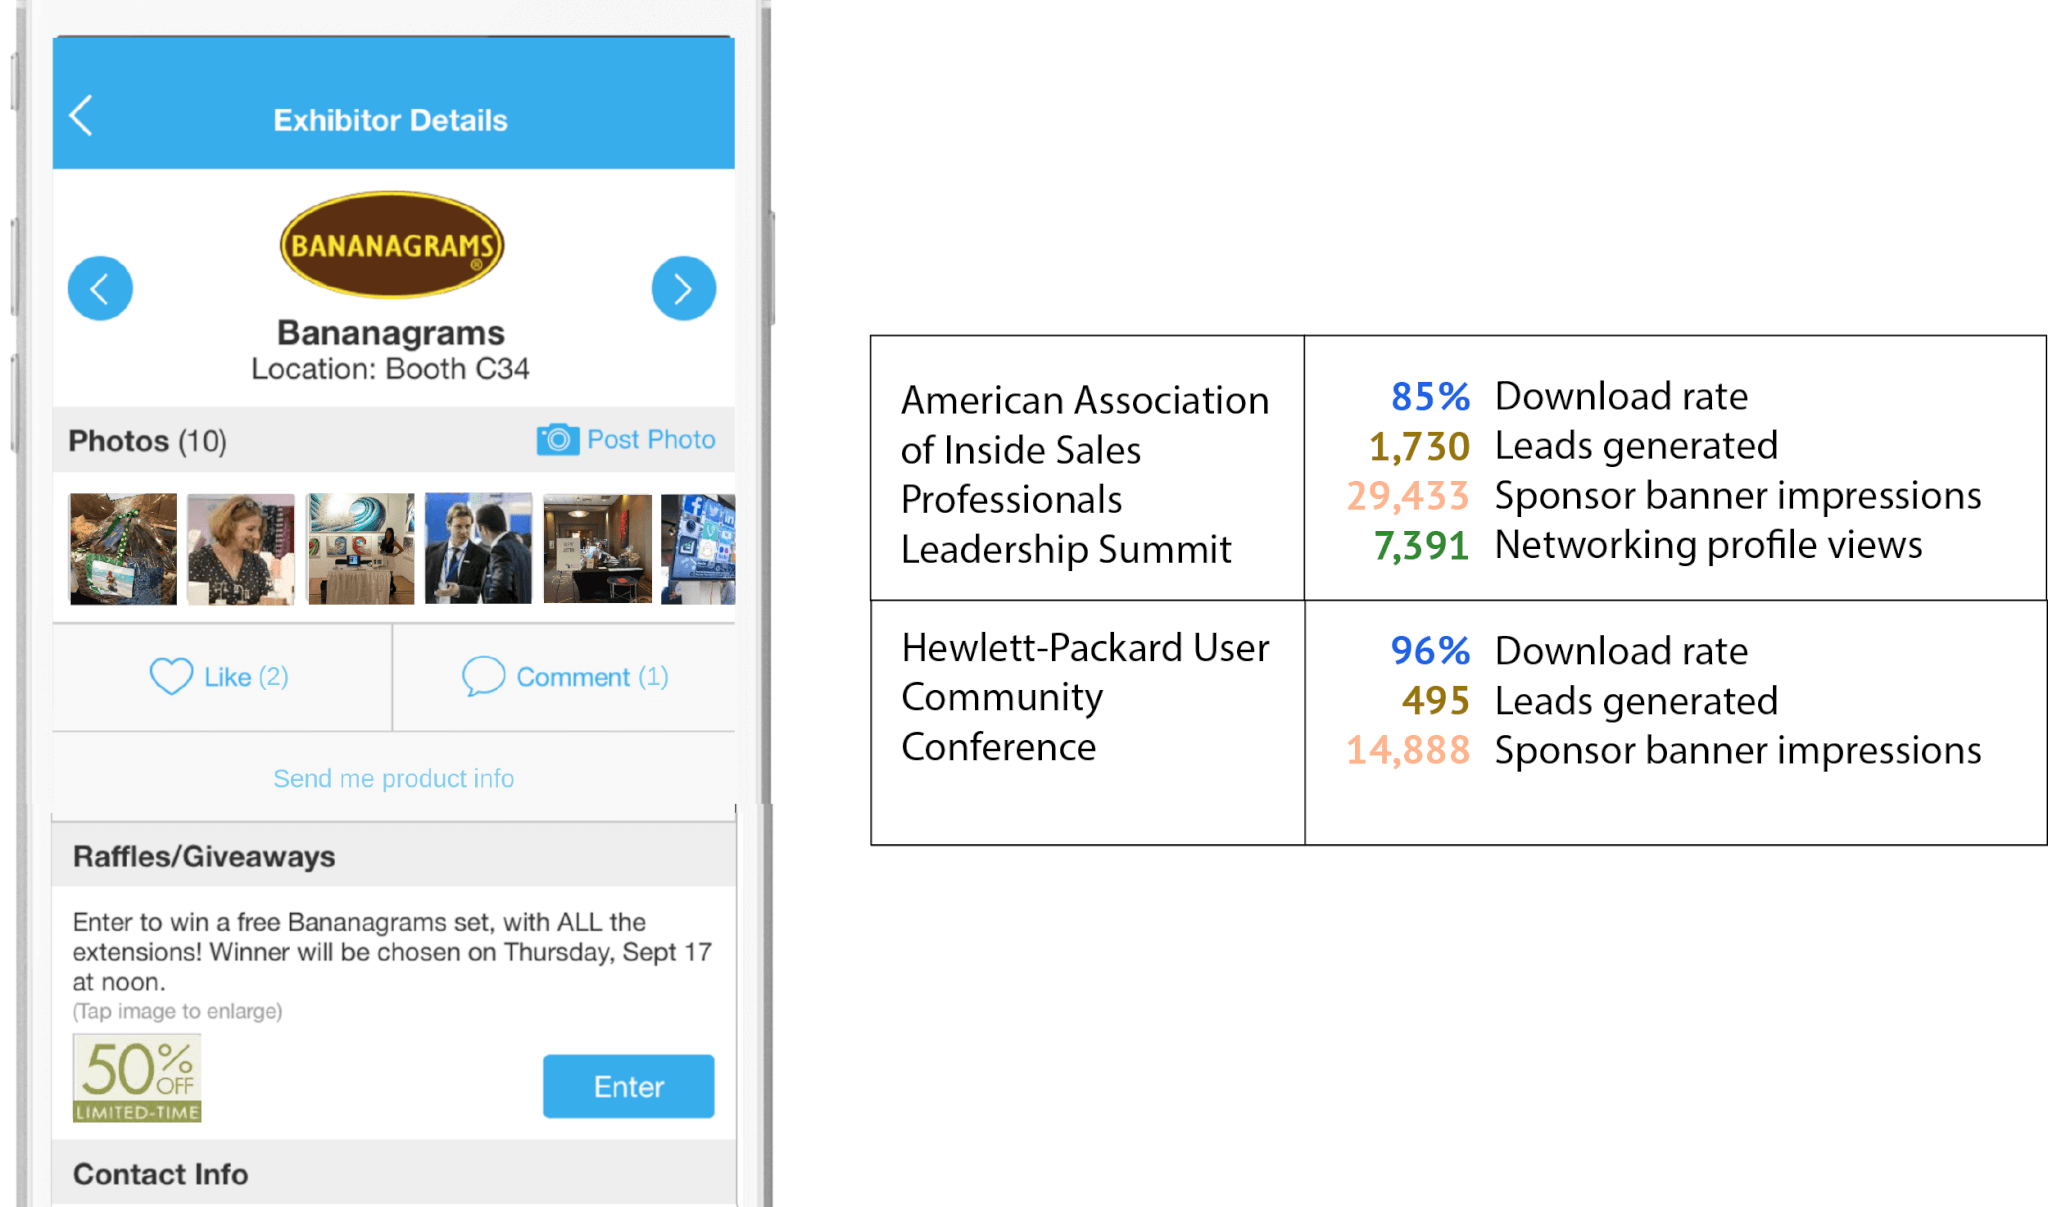 Event app for associations